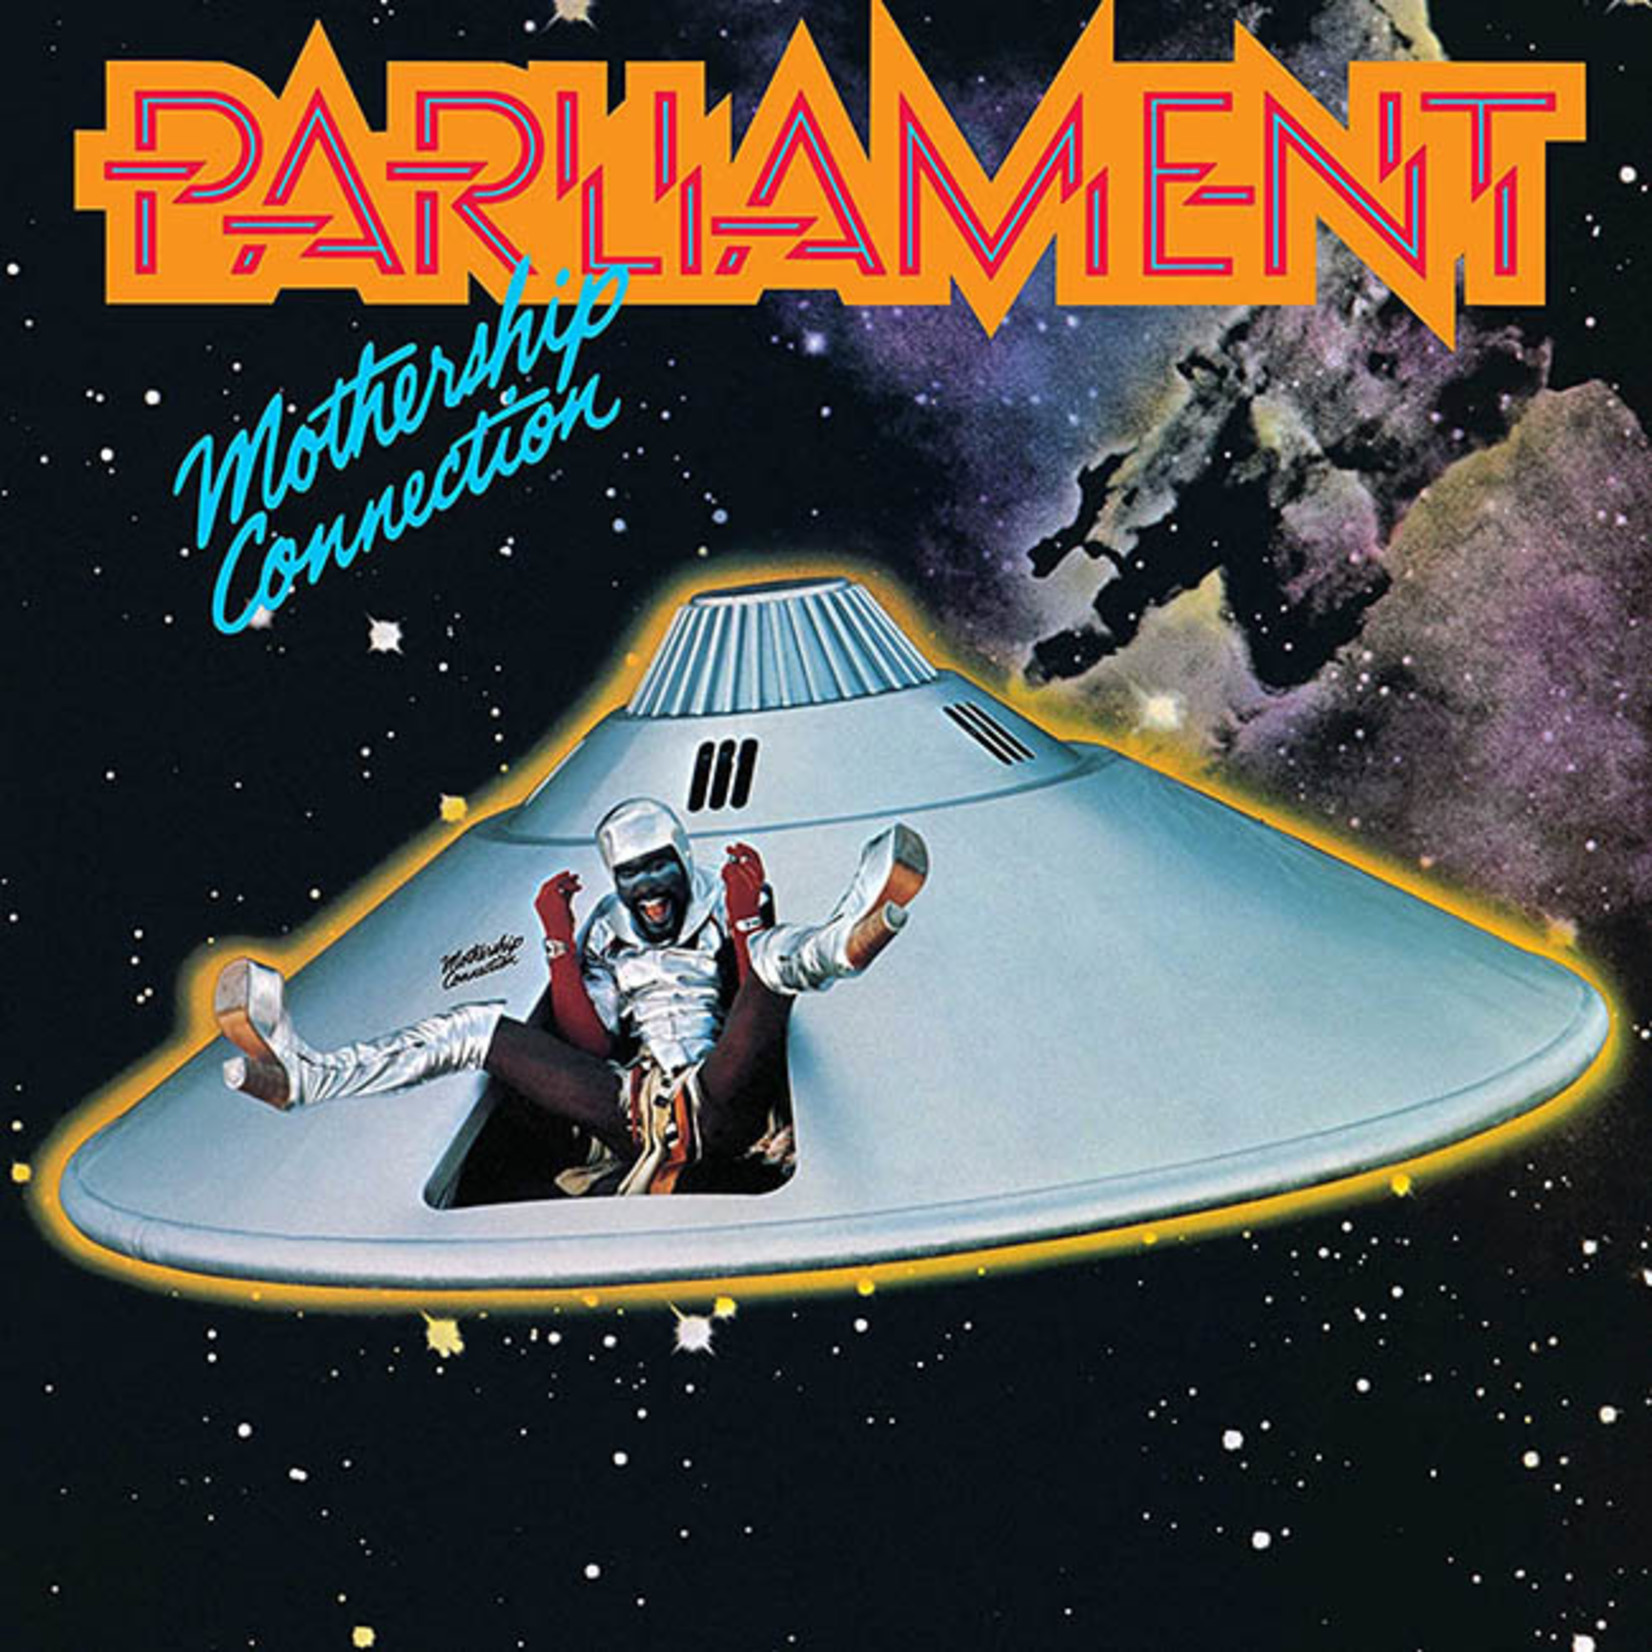 [New] Parliament: Mothership Connection